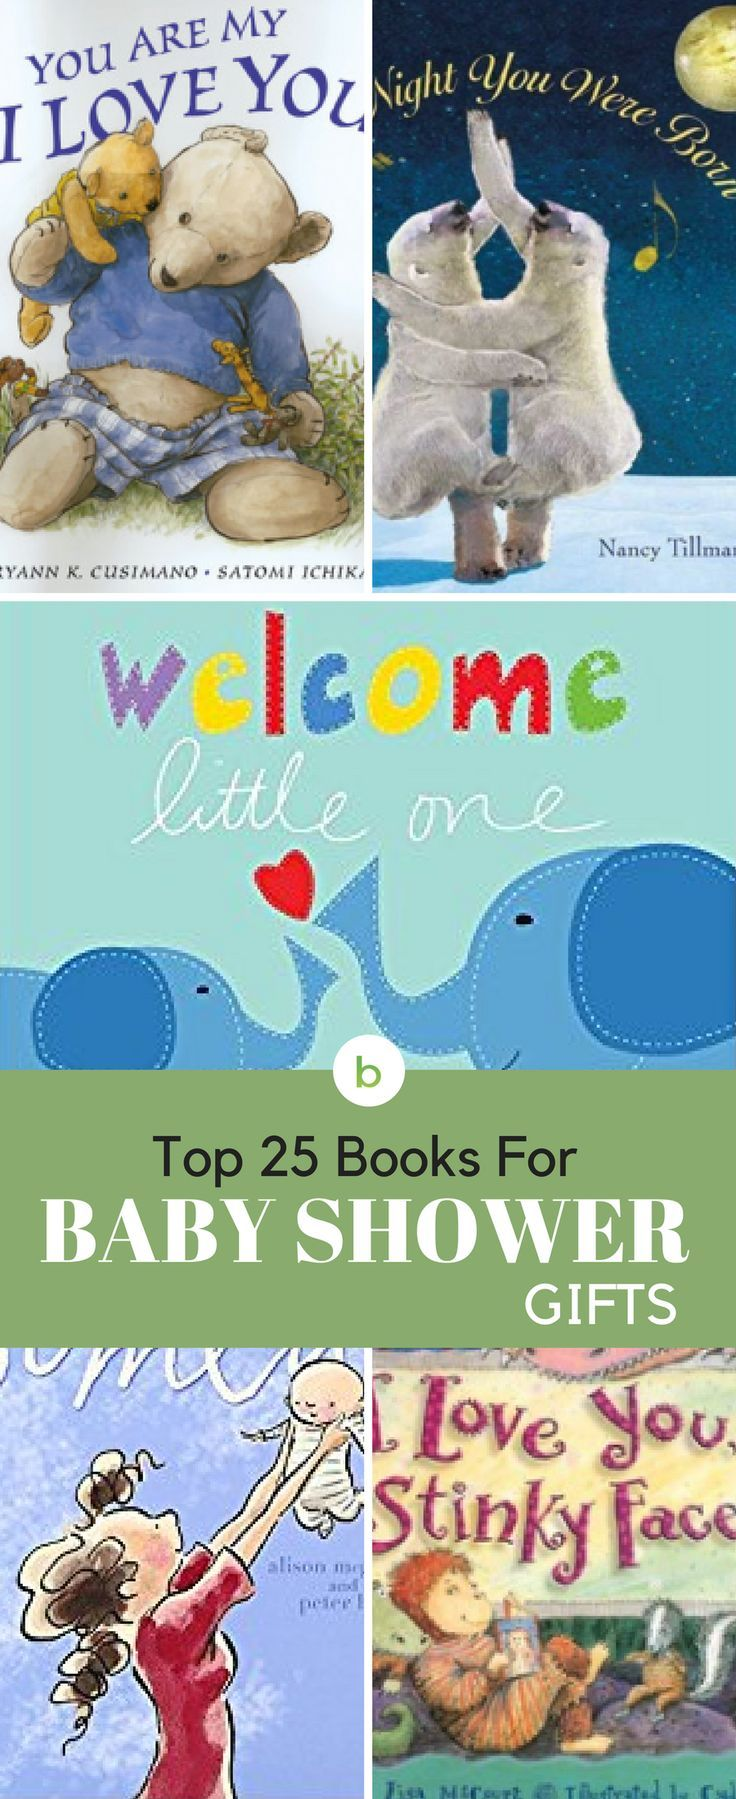 Top 25 Books For Baby Shower Gifts Baby Shower Party Gifts